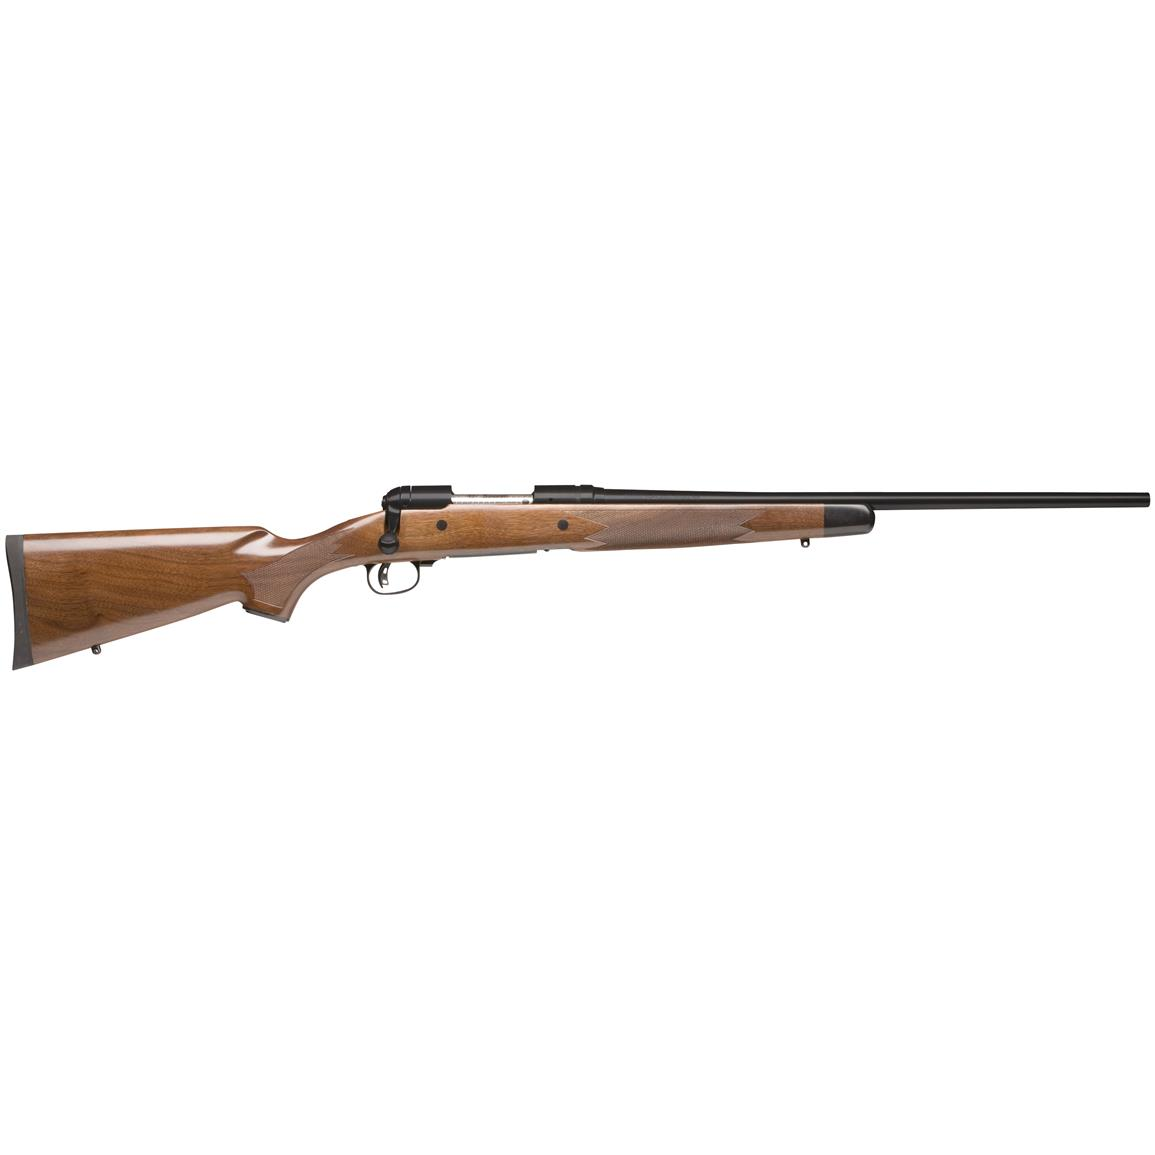 "Savage Model 14 American Classic, Bolt Action, .308 Winchester, 26"" Barrel, 4+1 Rounds"